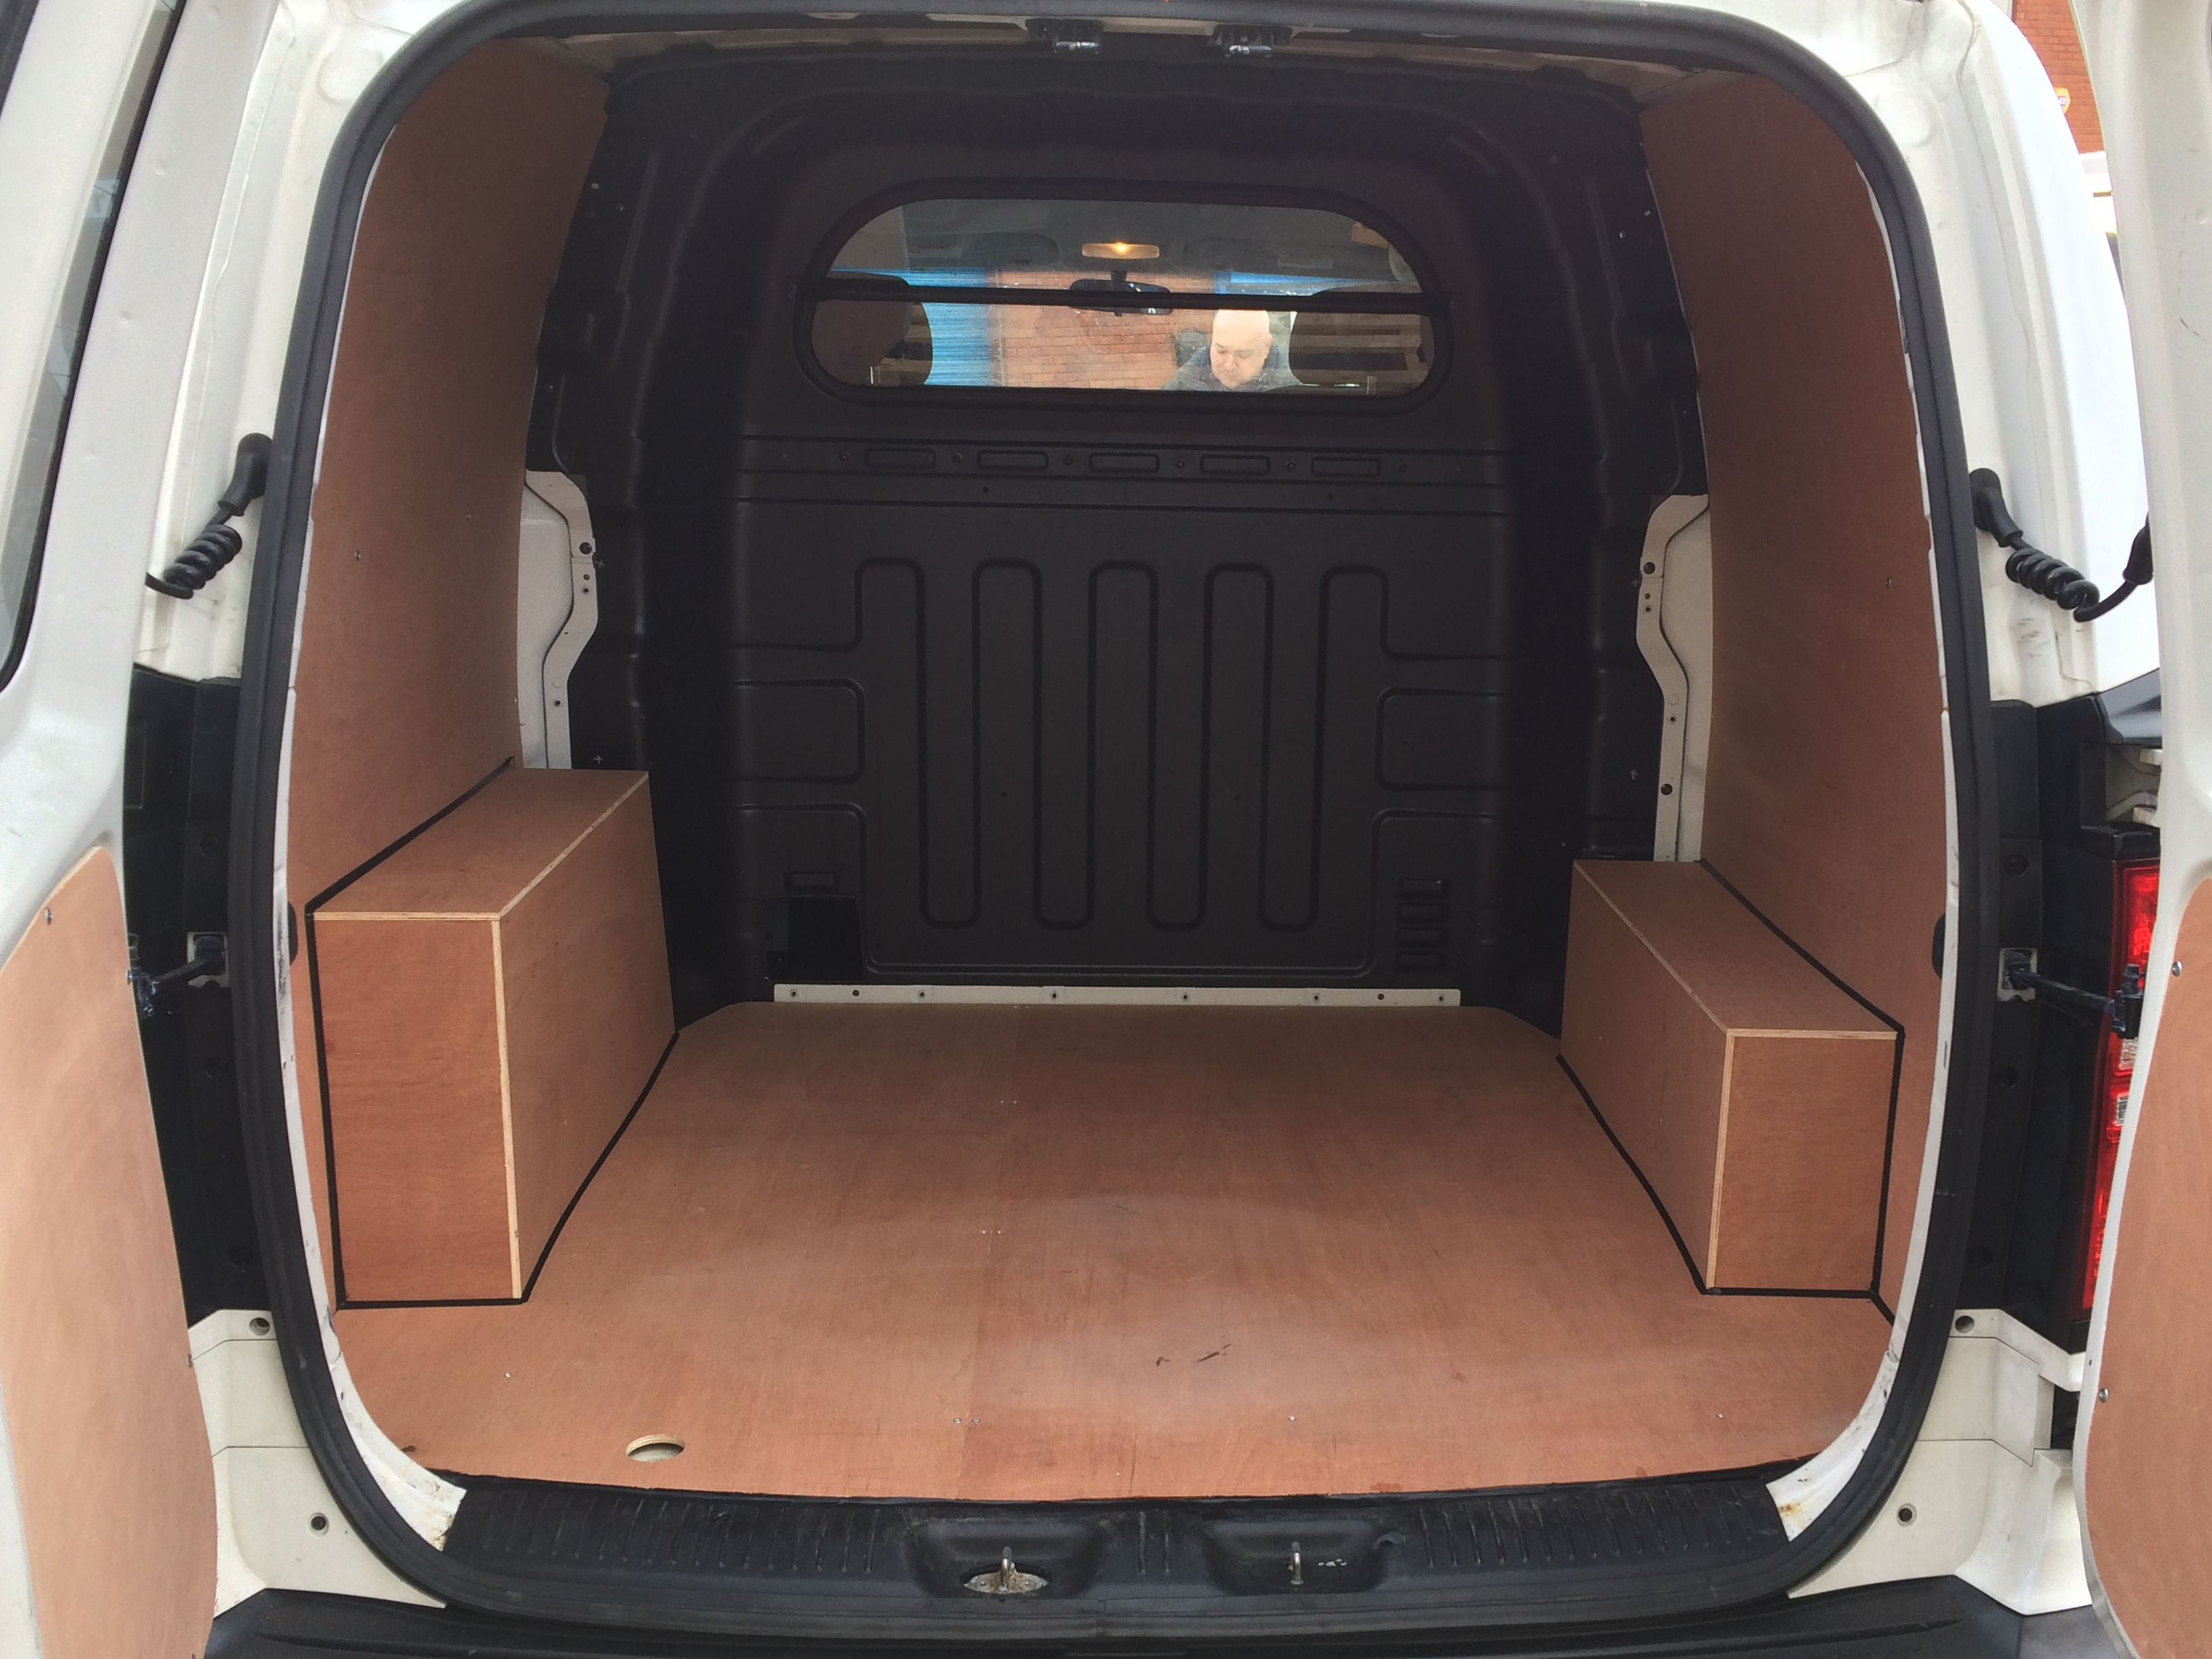 Plylining The New Ford Transit Courier Ford Transit Car Accessories Hyundai